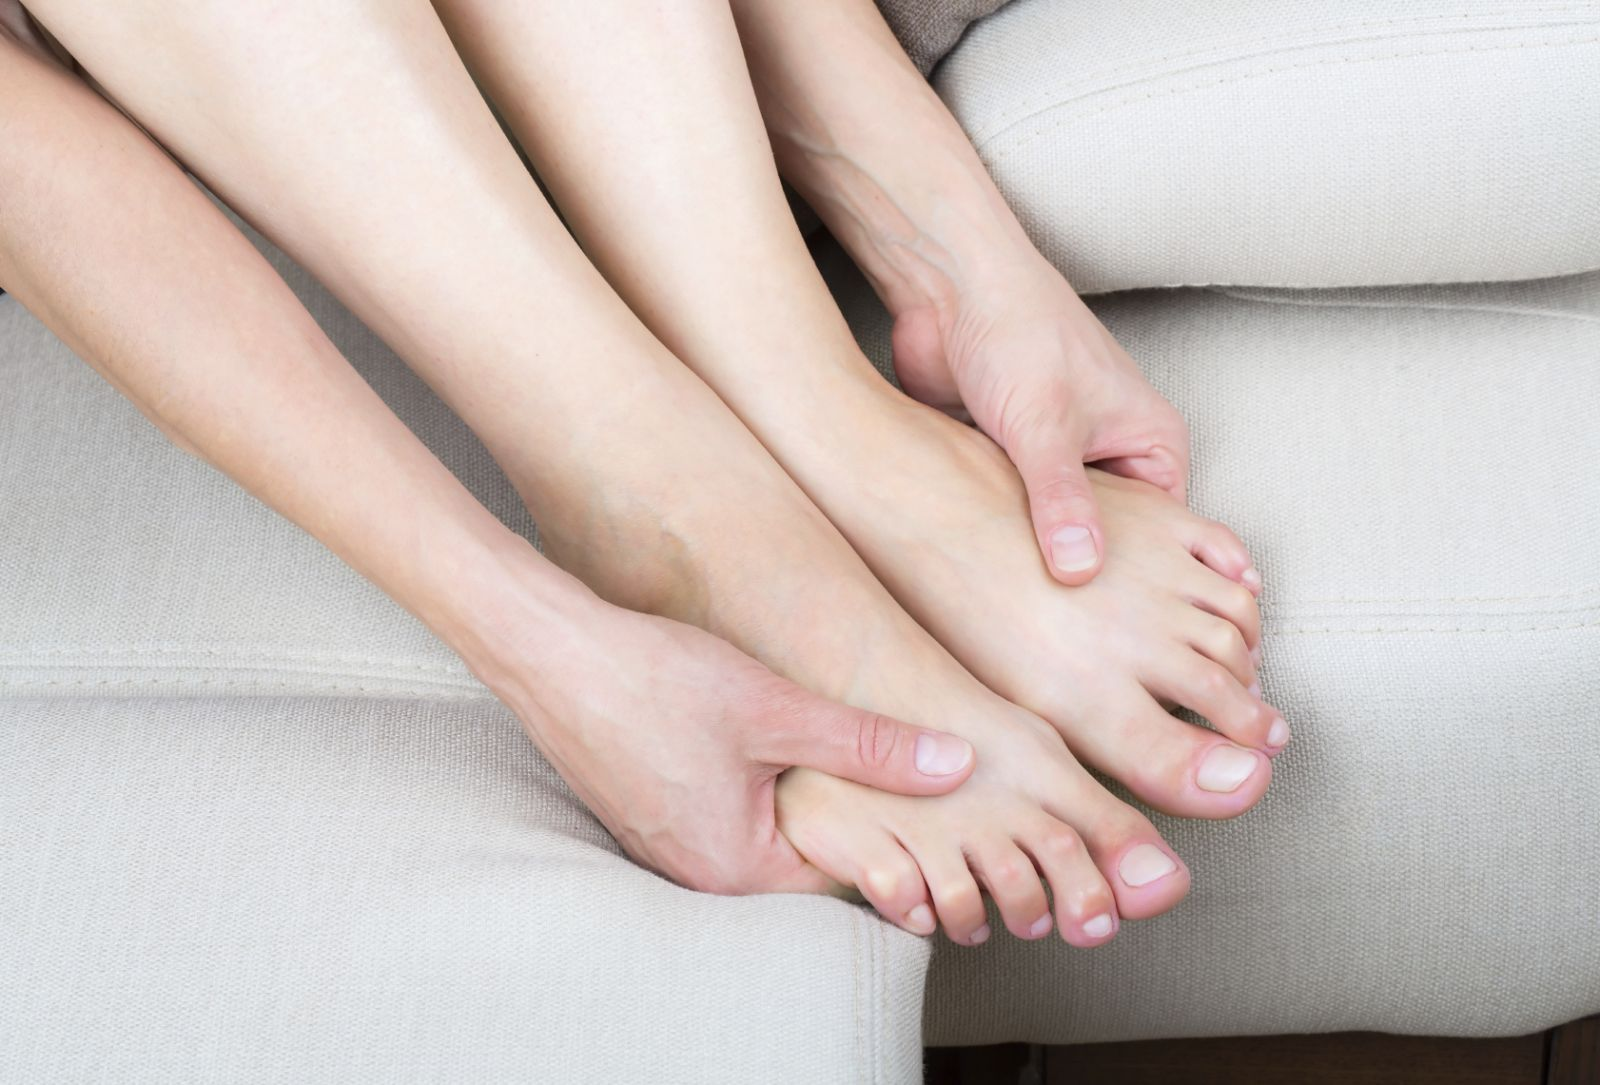 Foot massage relieves body pains-telugu health news today